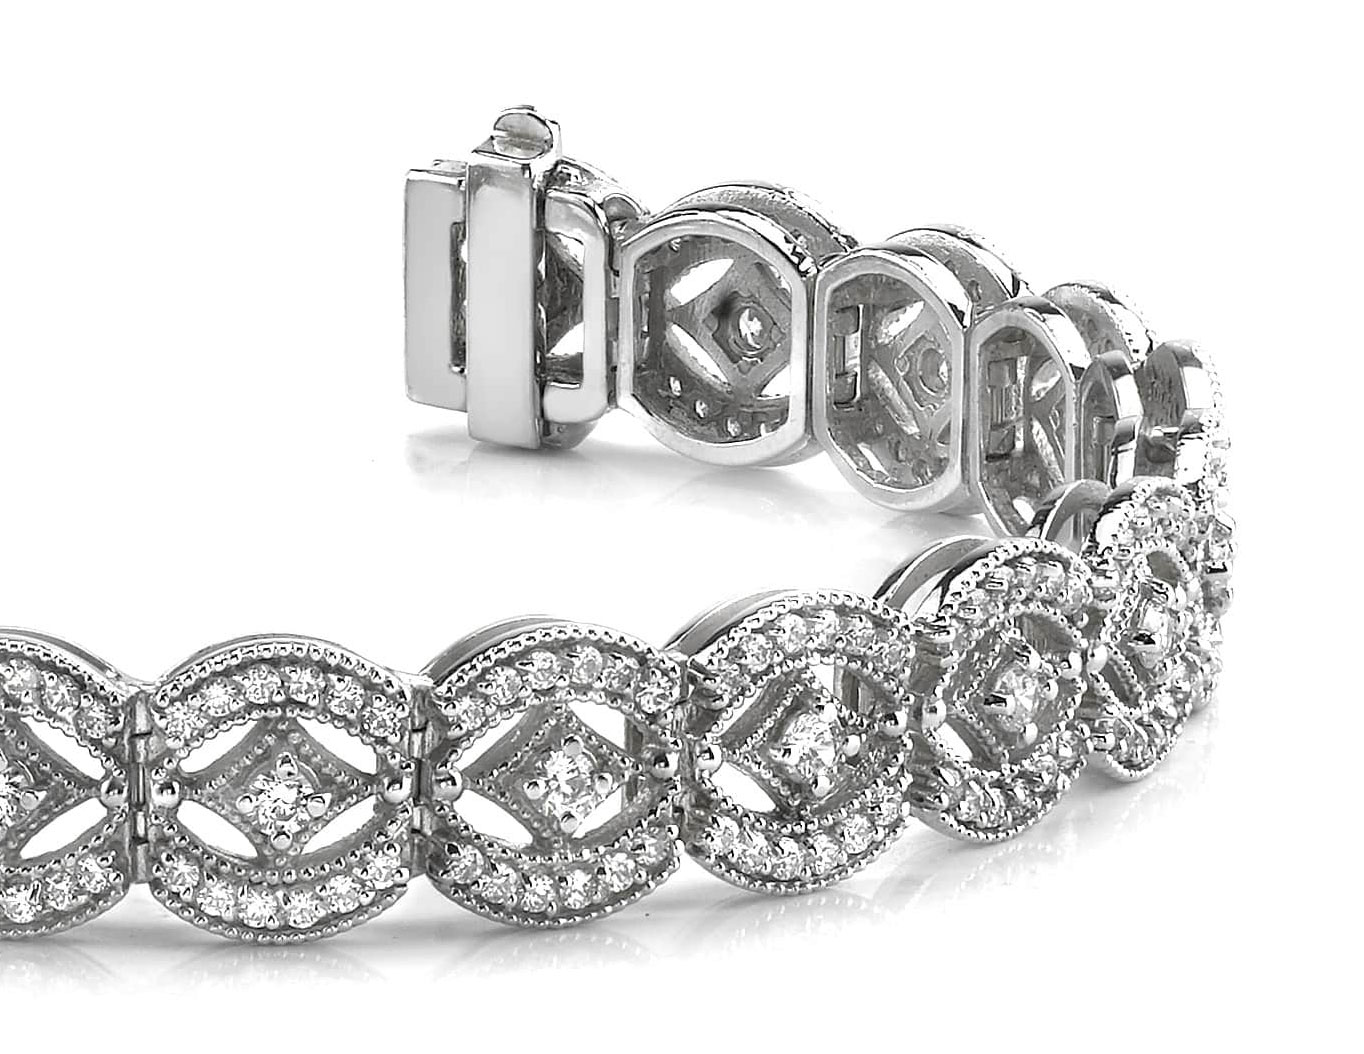 New Vintage Art Deco Diamond Bracelet